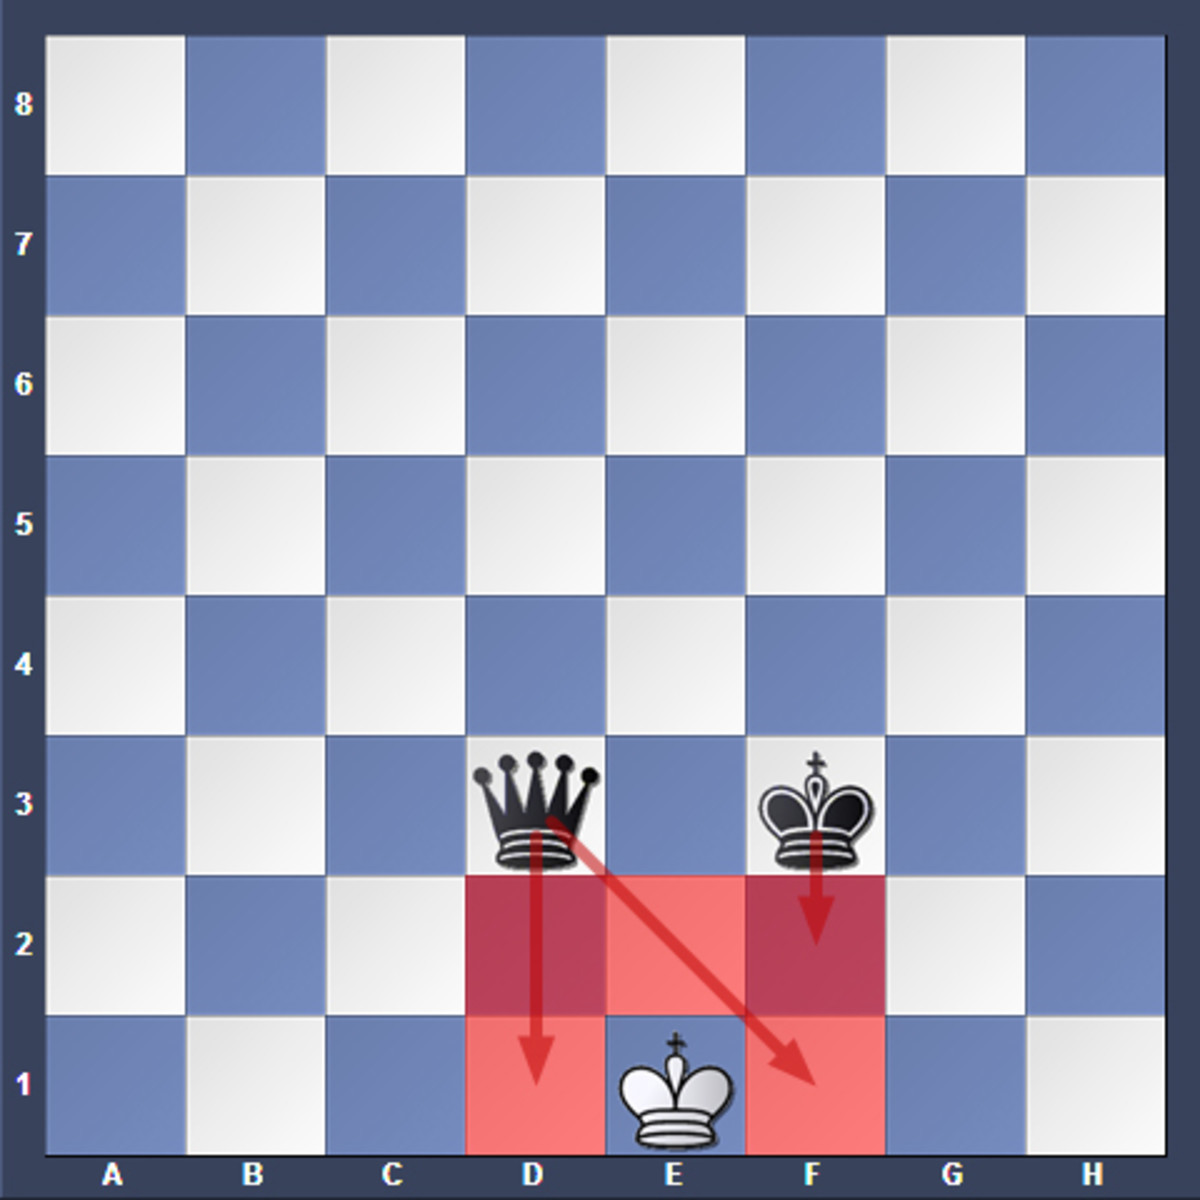 Unfortunately for Black, he has attacked all the squares around the white king. It's white's turn and he has no legal moves. It's a draw.